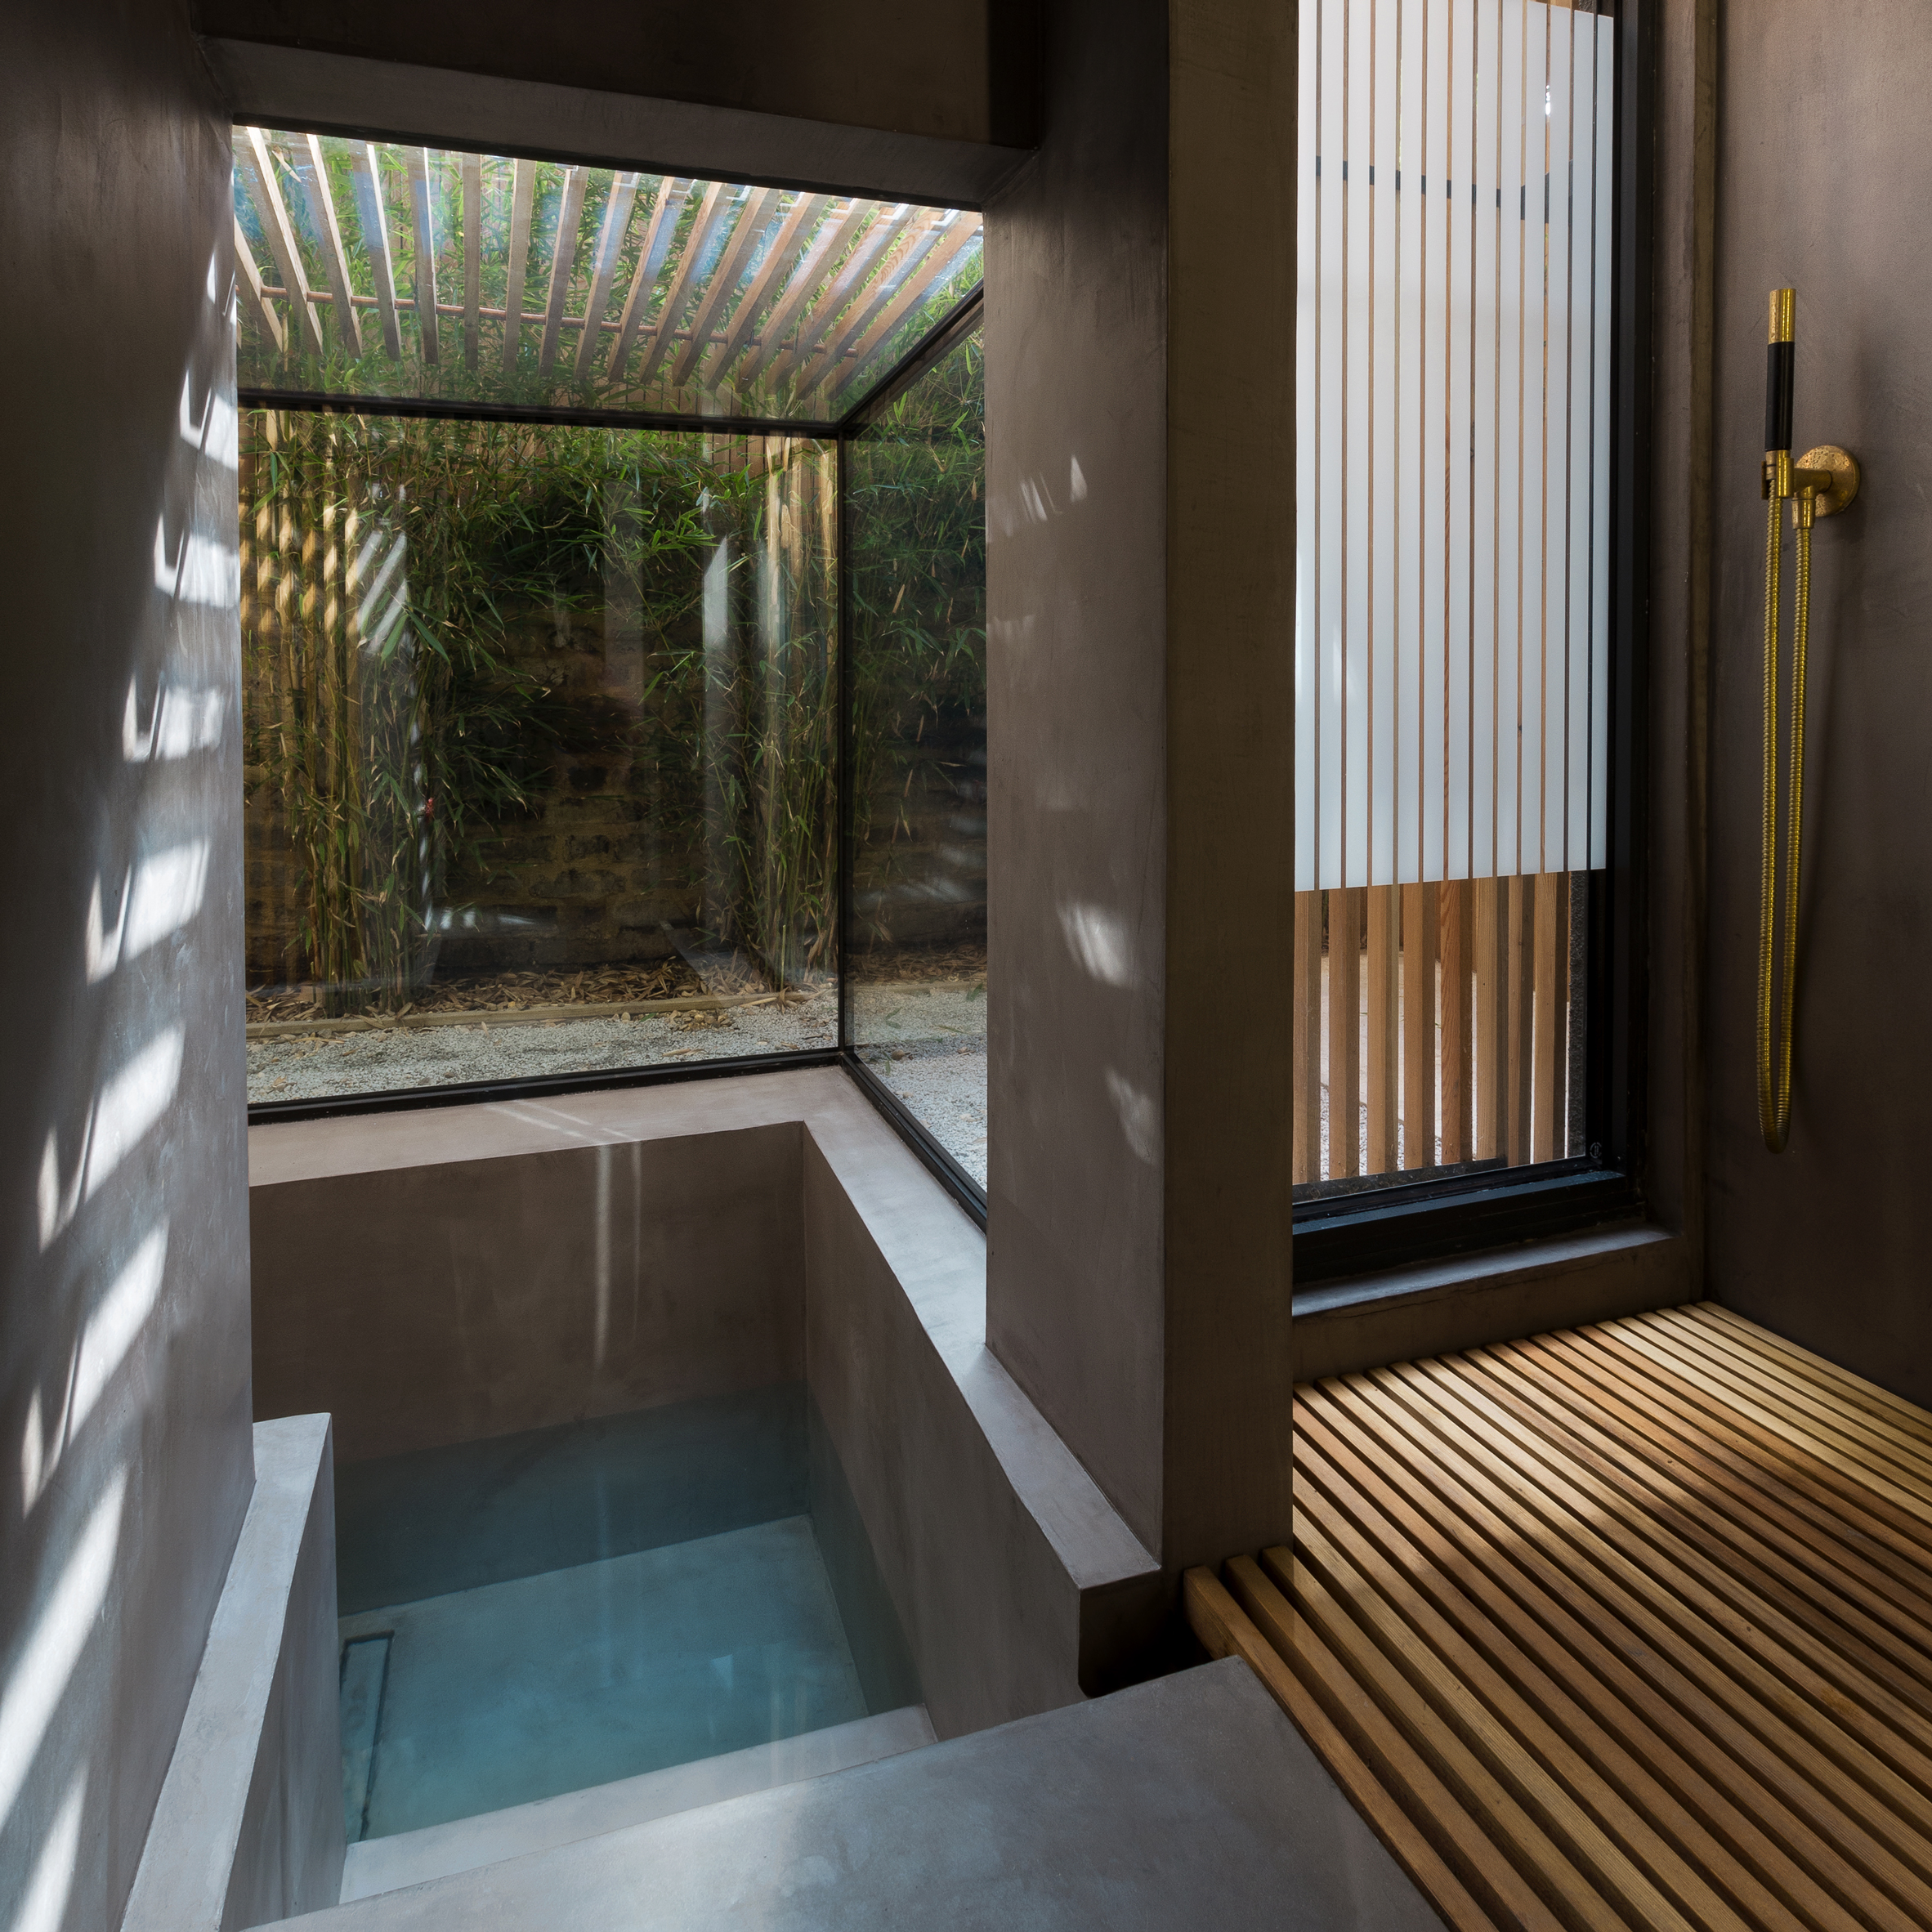 Sunken washroom by Studio 304 allows residents to bathe in the garden